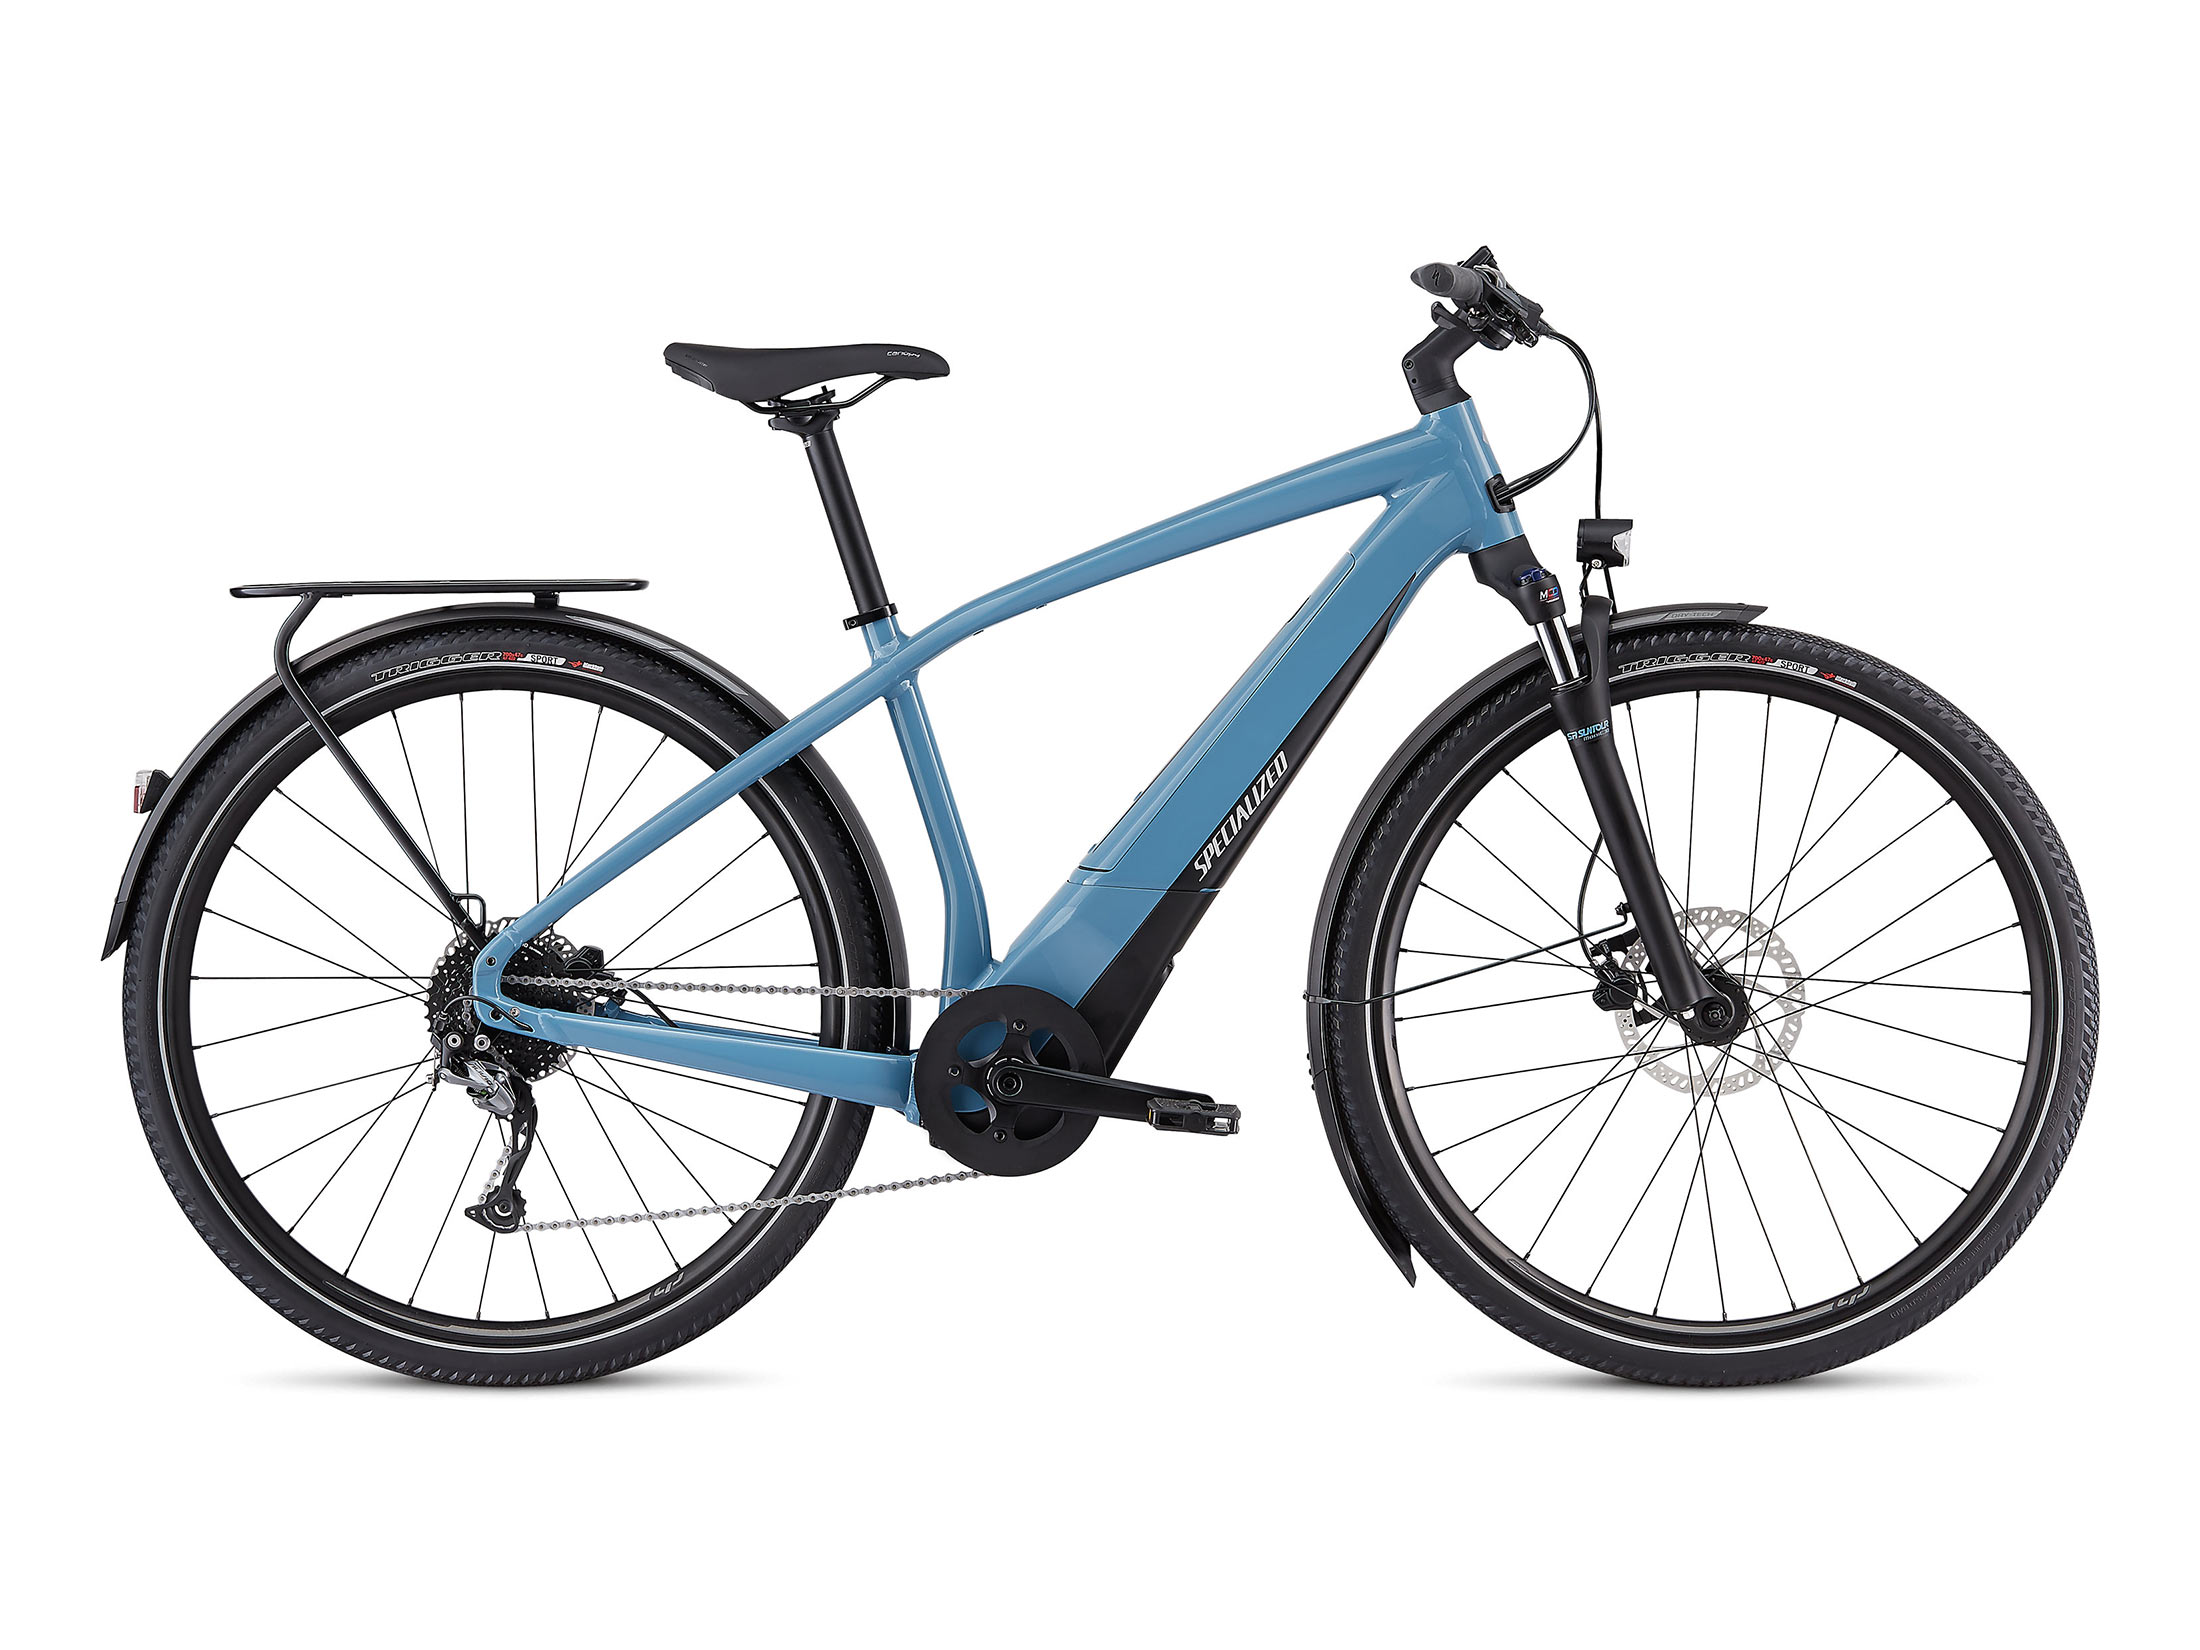 Ηλεκτρικό Ποδήλατο Specialized Turbo Vado 3.0 - Storm Grey / Black / Liquid Silver